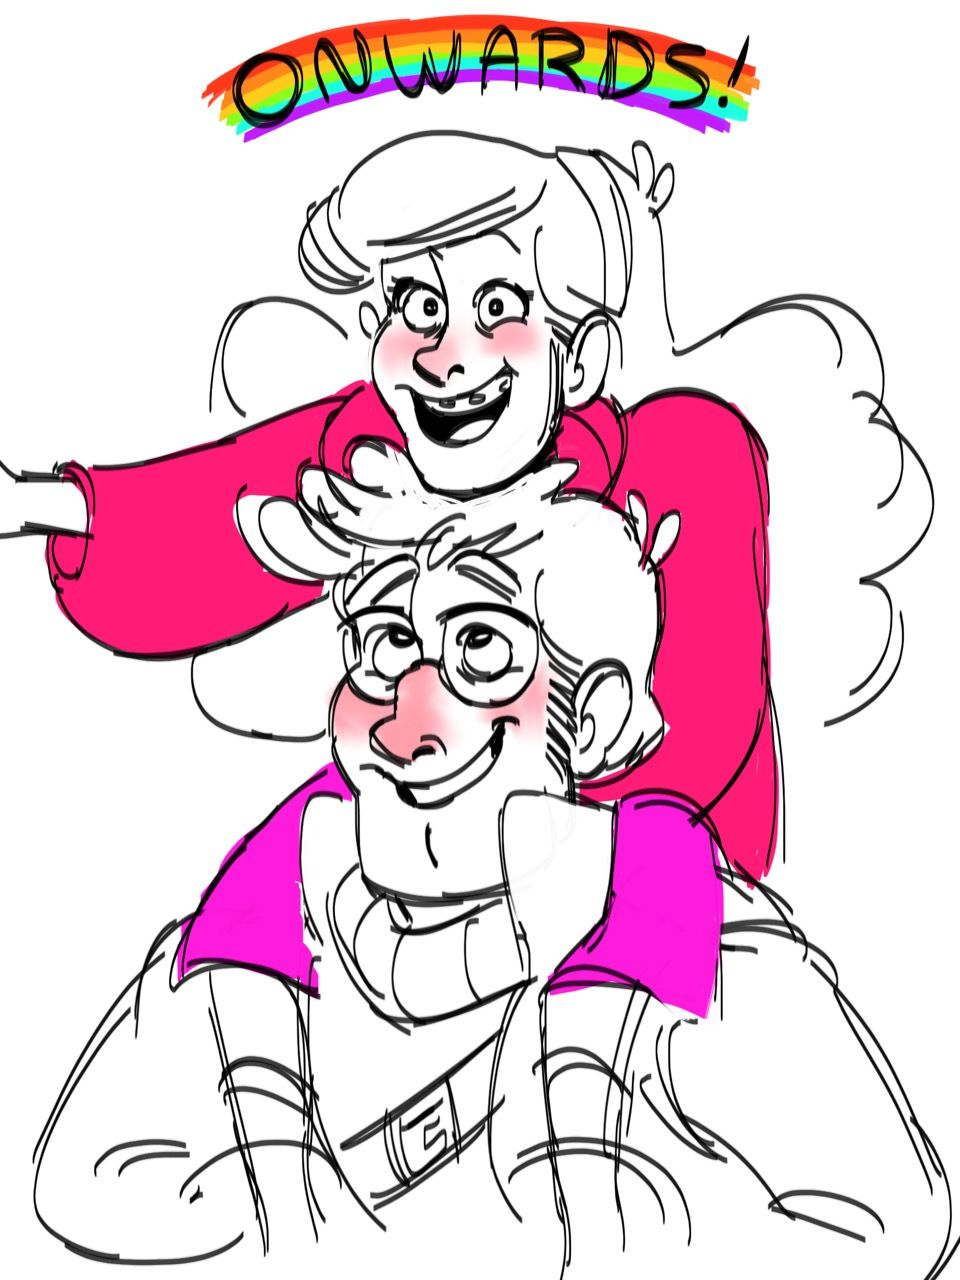 """kerbabbles: """"The future is in the past!! ONWARDS, GRUNKLE FORD!!!"""" I've been feeling a teensy bit down in the dumps tonight, so I drew these darlings to help cheer me up!!!"""